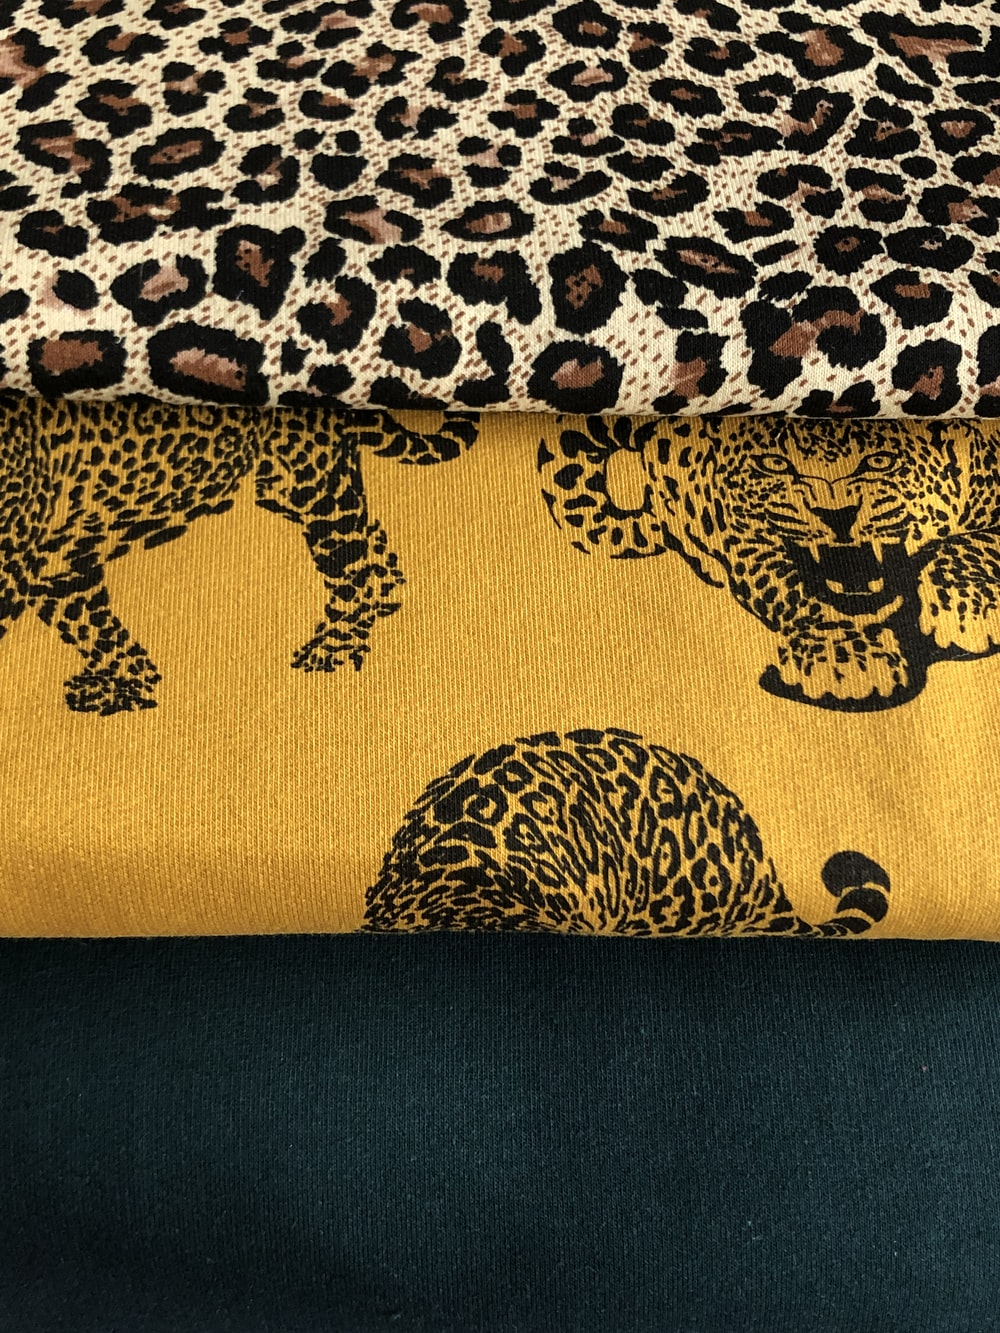 brown and white leopard fabric